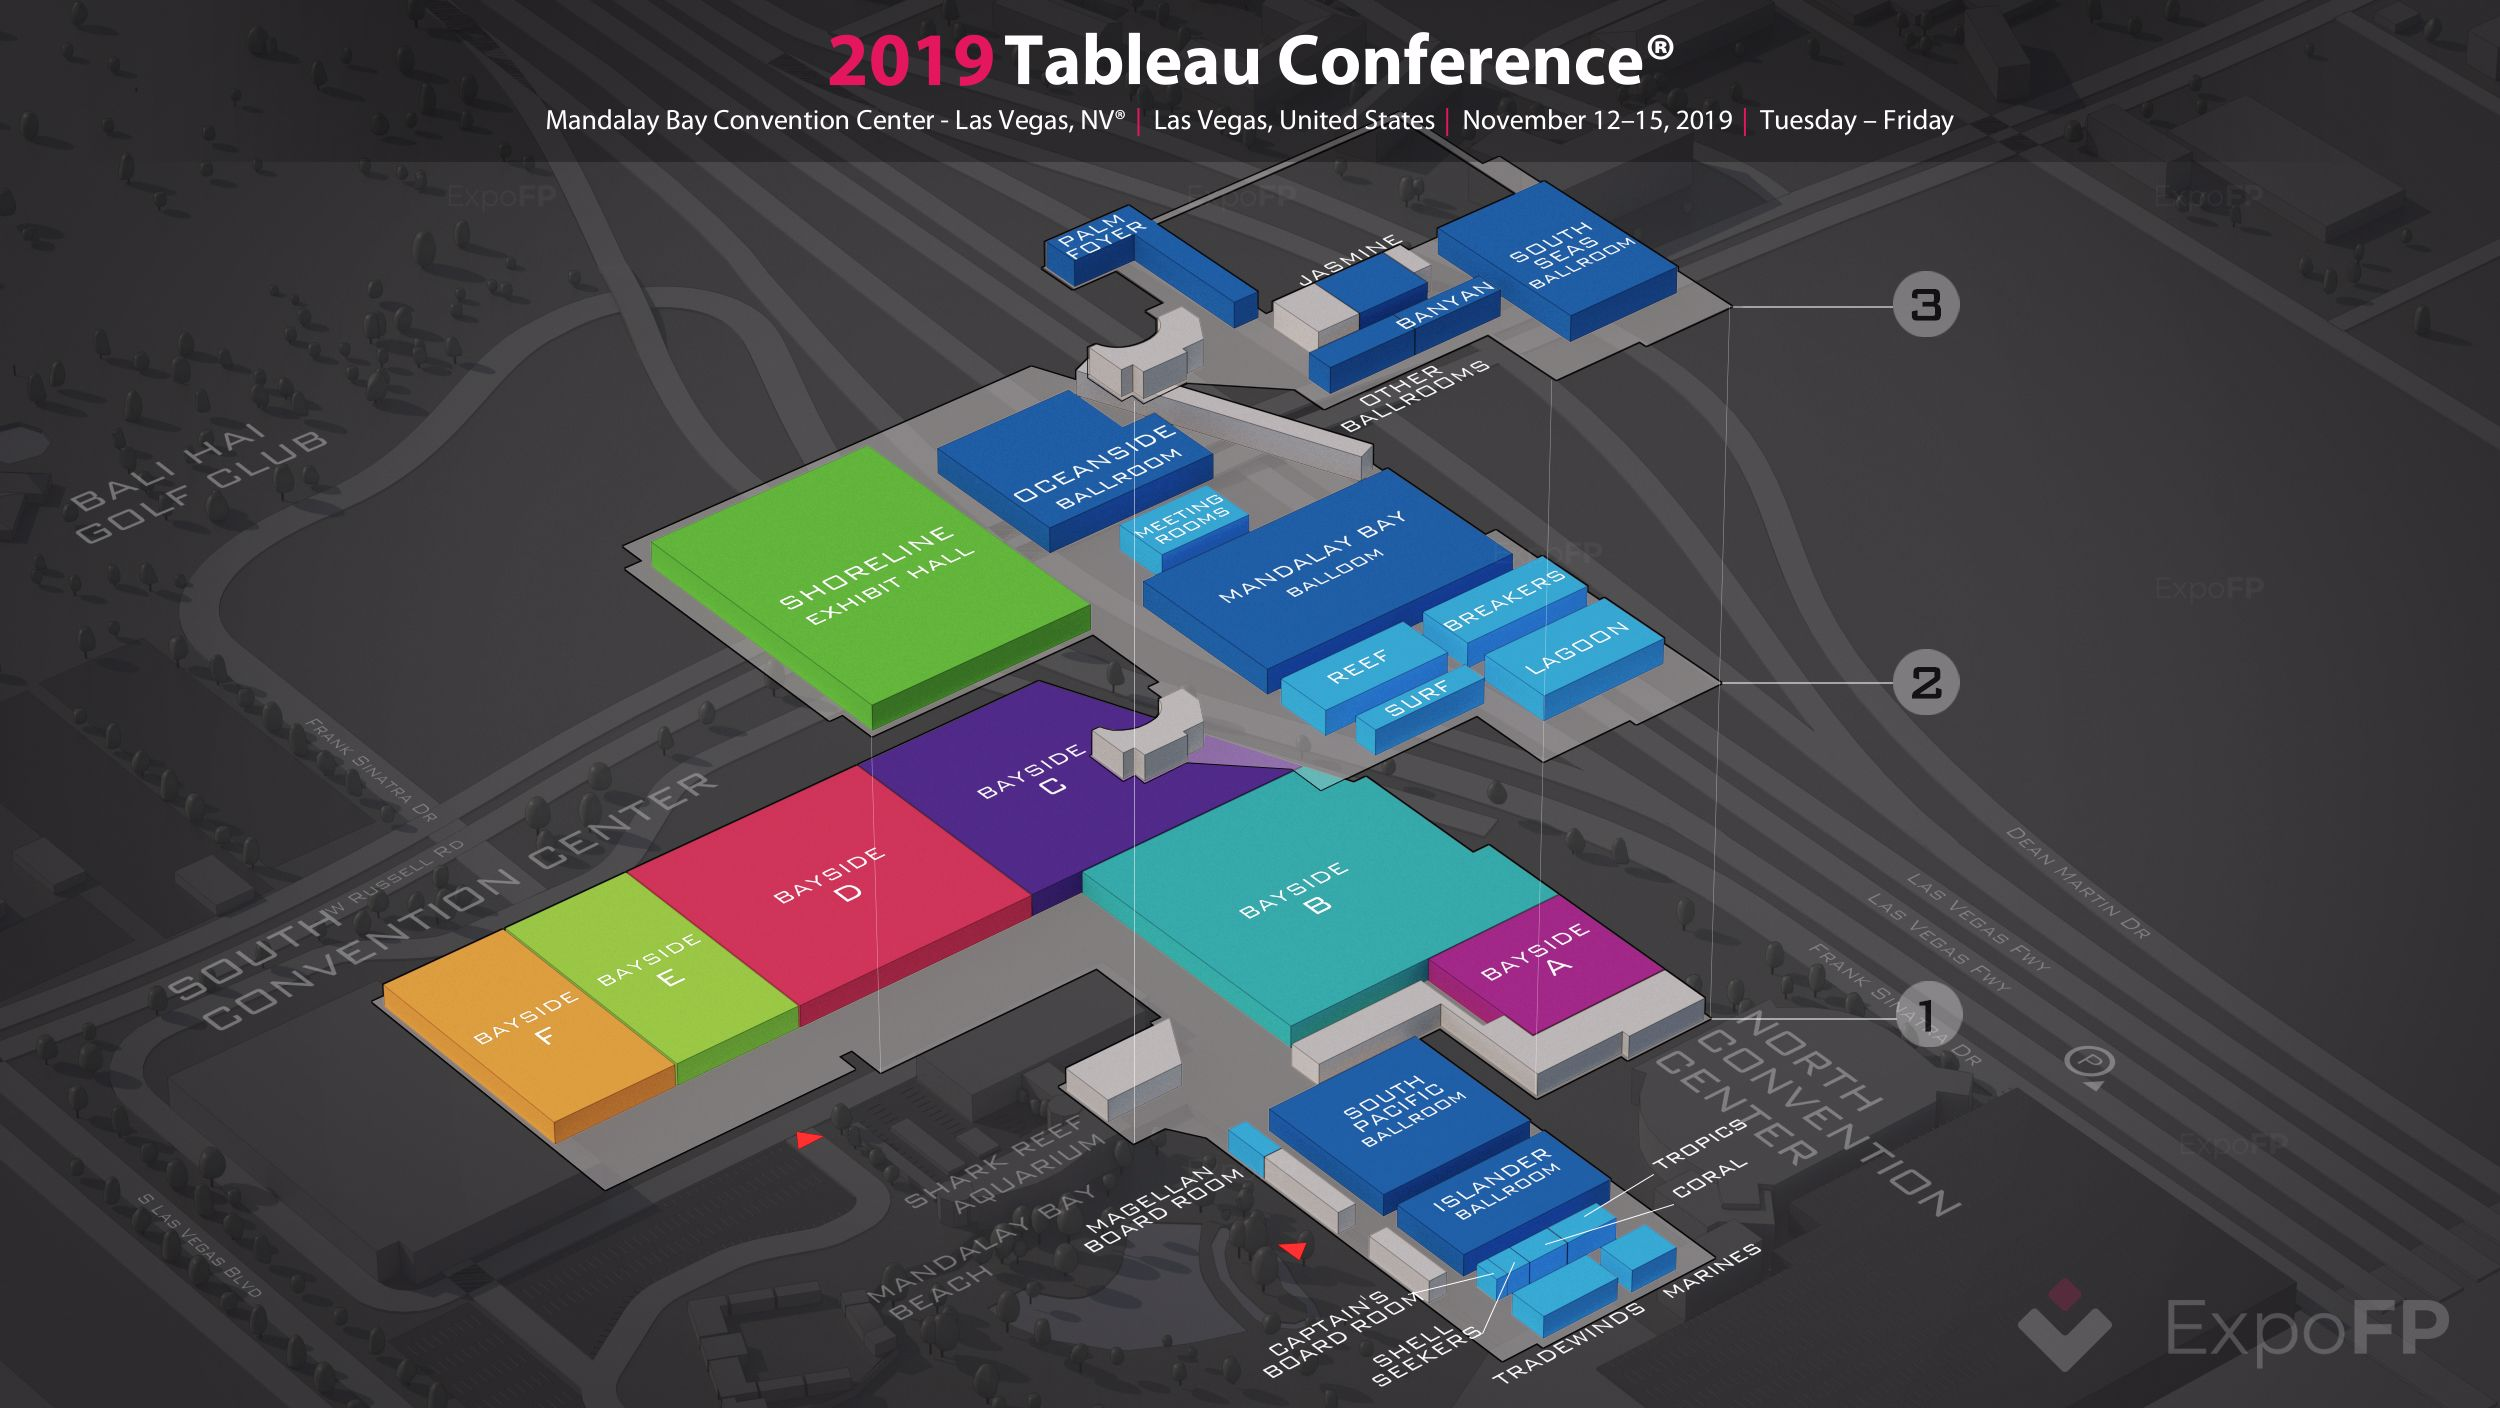 Tableau Conference 2019 in Mandalay Bay Convention Center